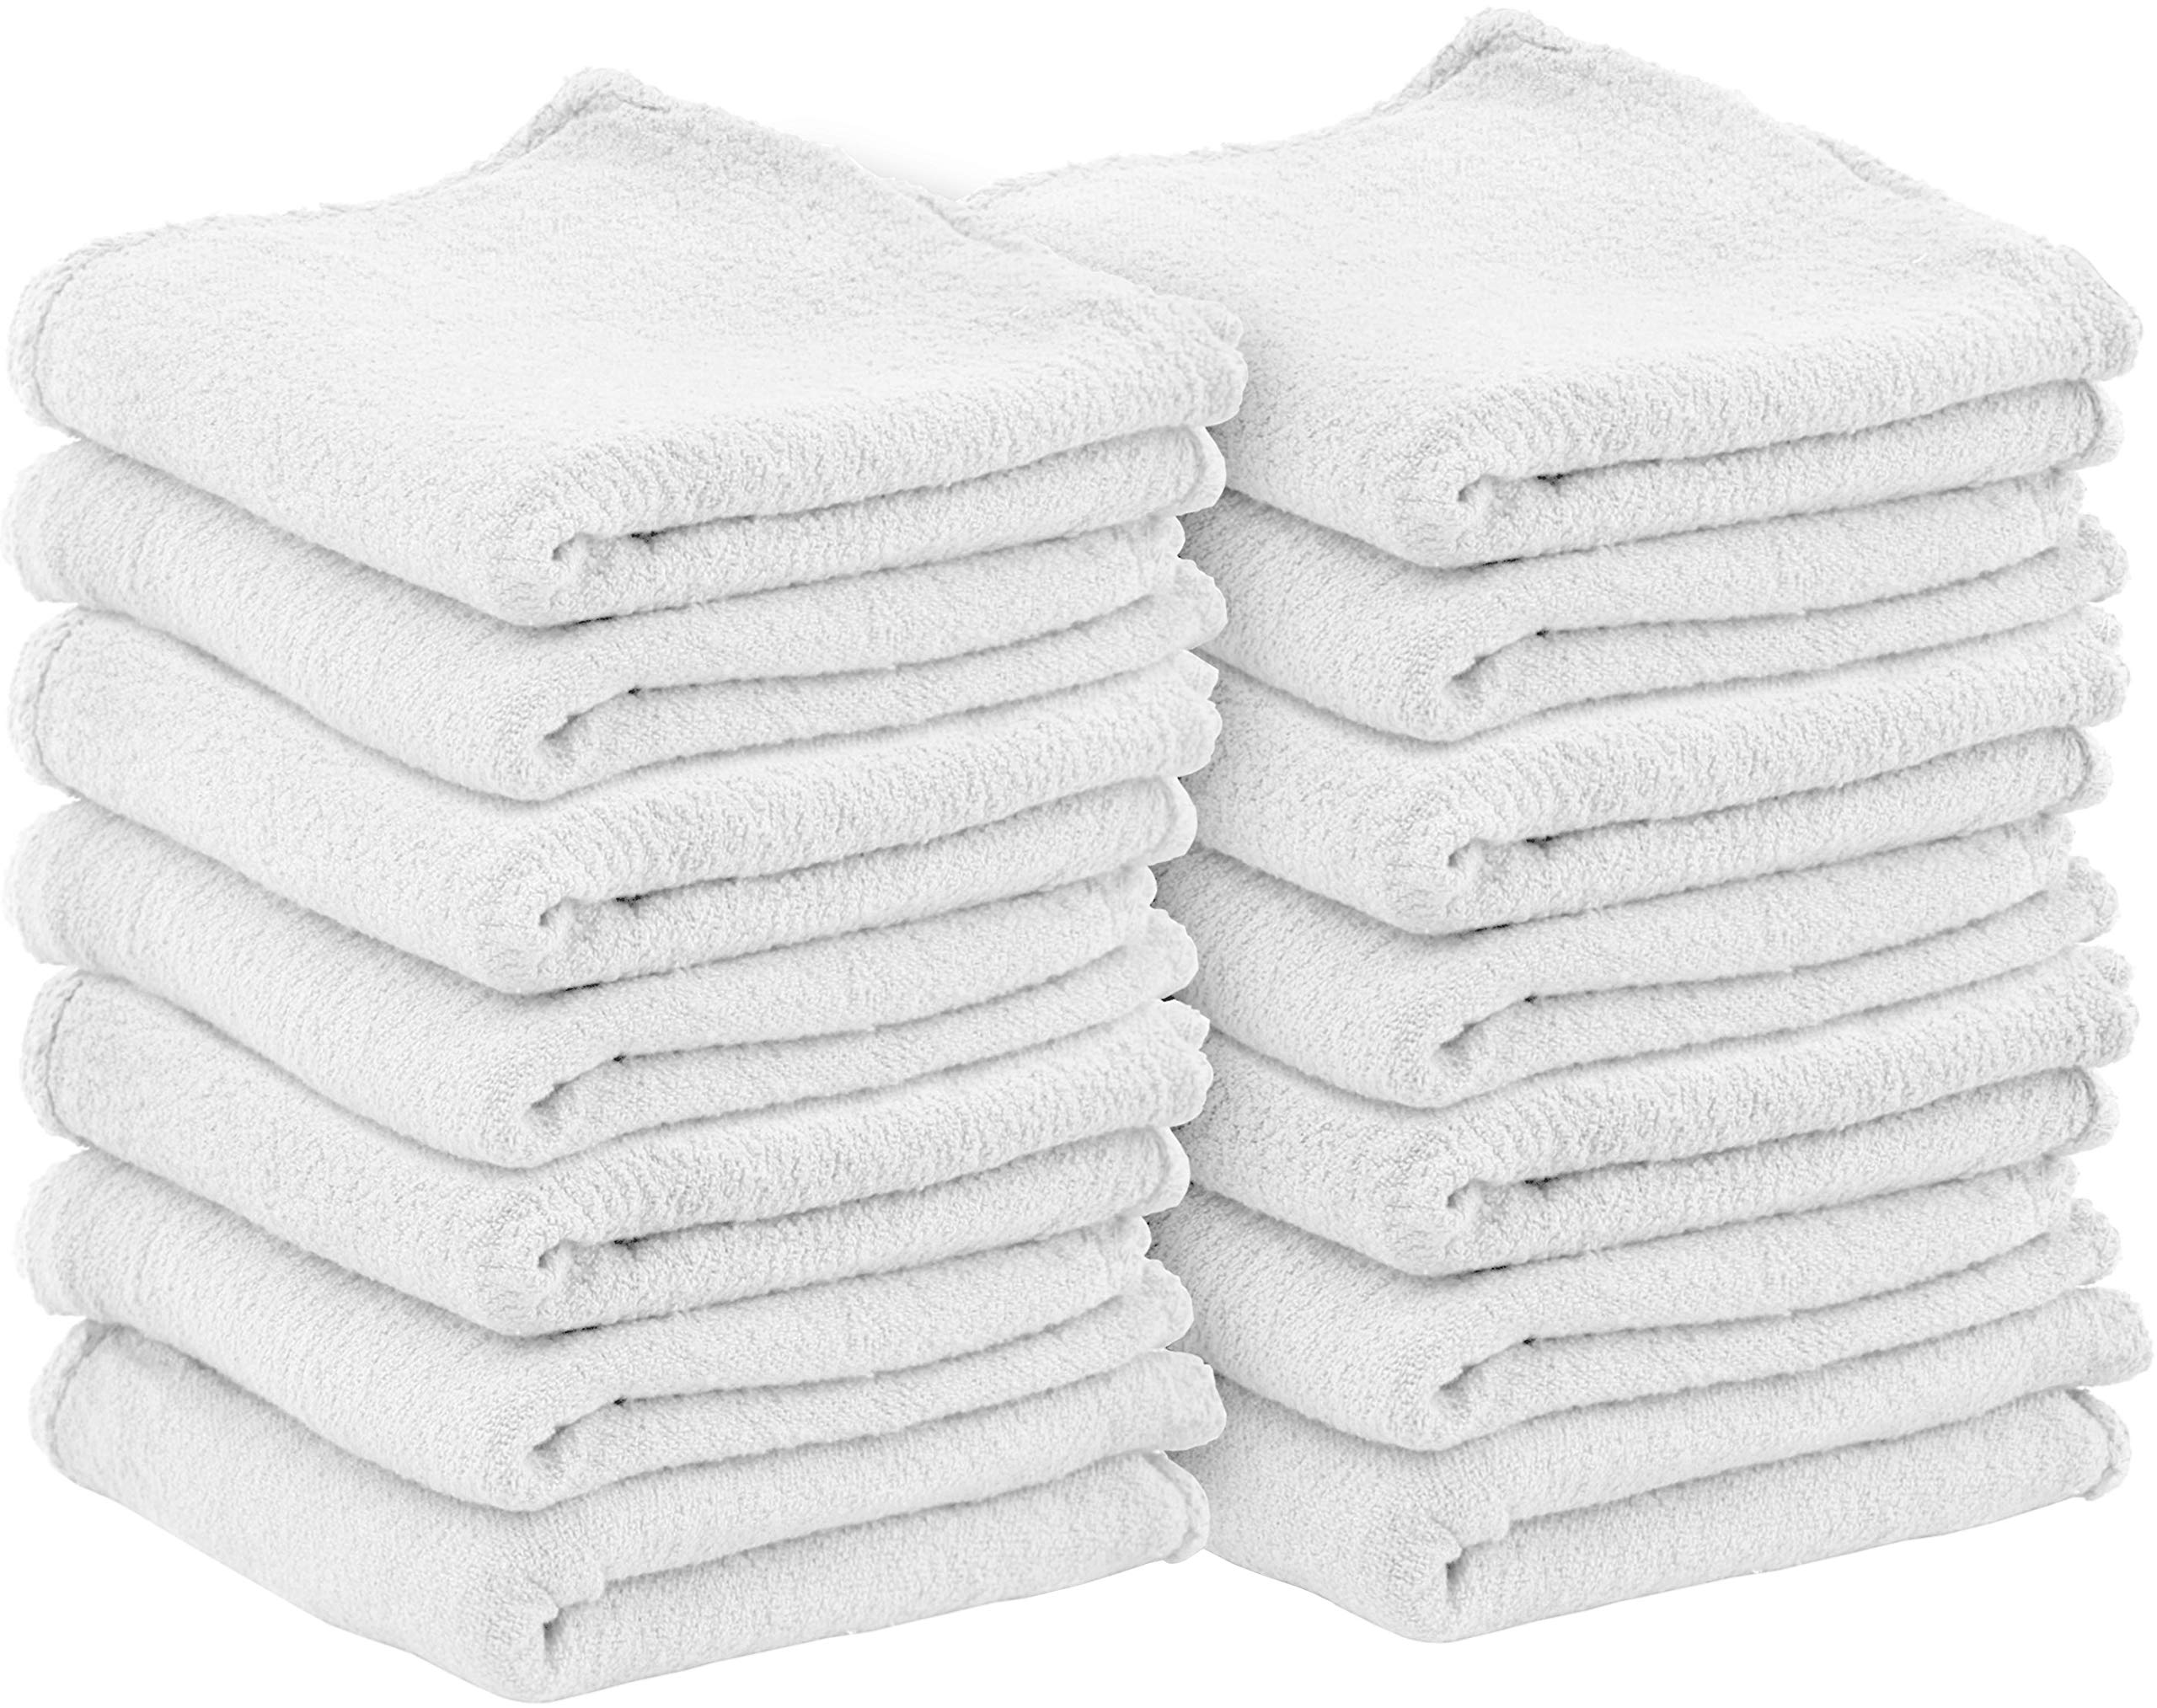 Utopia Towels Commercial Cotton Shop Towels - White (100 Pack) by Utopia Towels (Image #1)